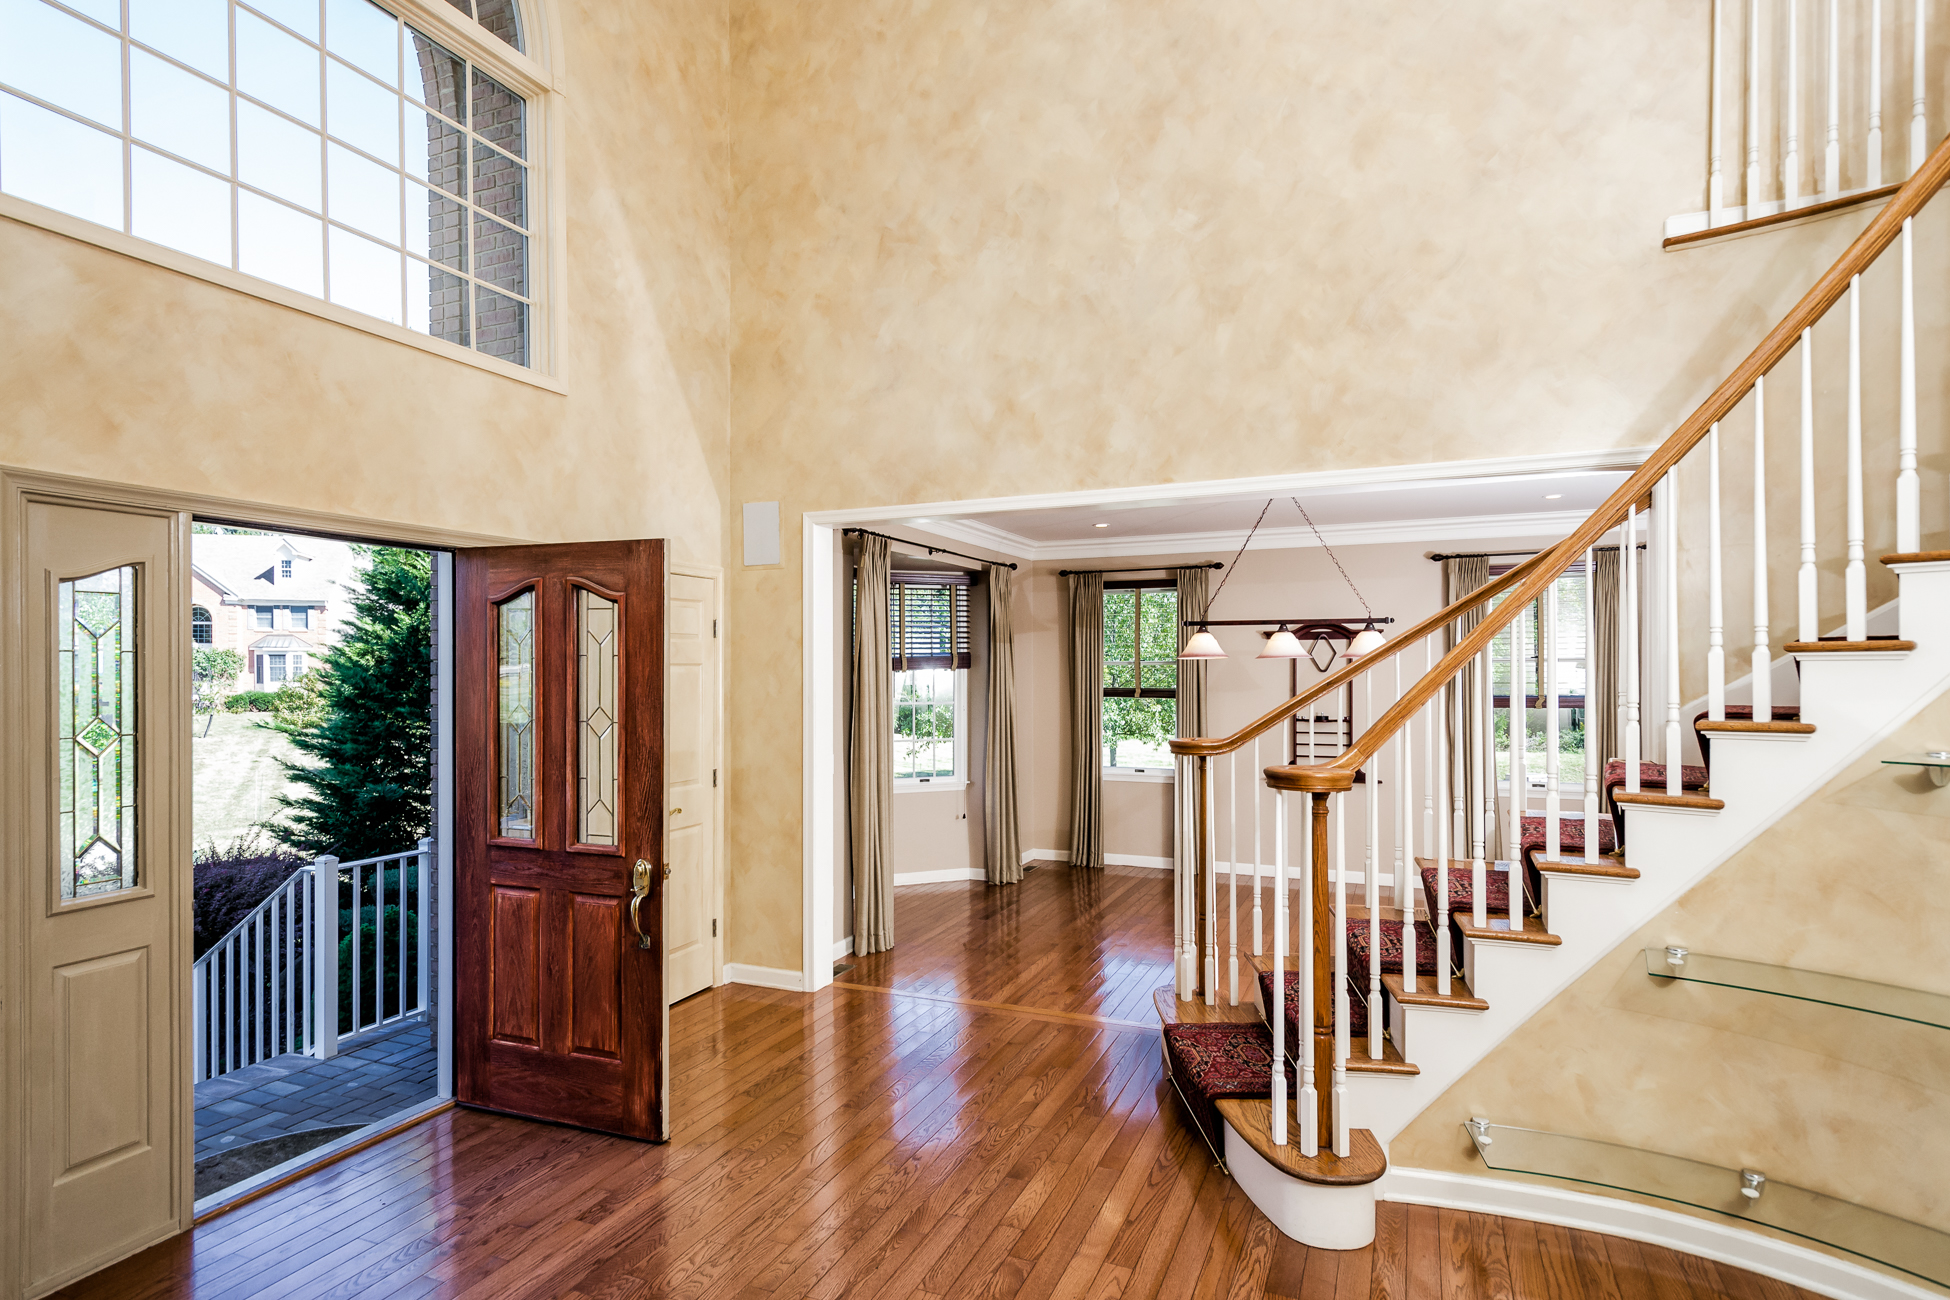 Additional photo for property listing at Grand Style Entertaining - Montgomery Township 43 Rosewood Court Belle Mead, New Jersey 08502 États-Unis